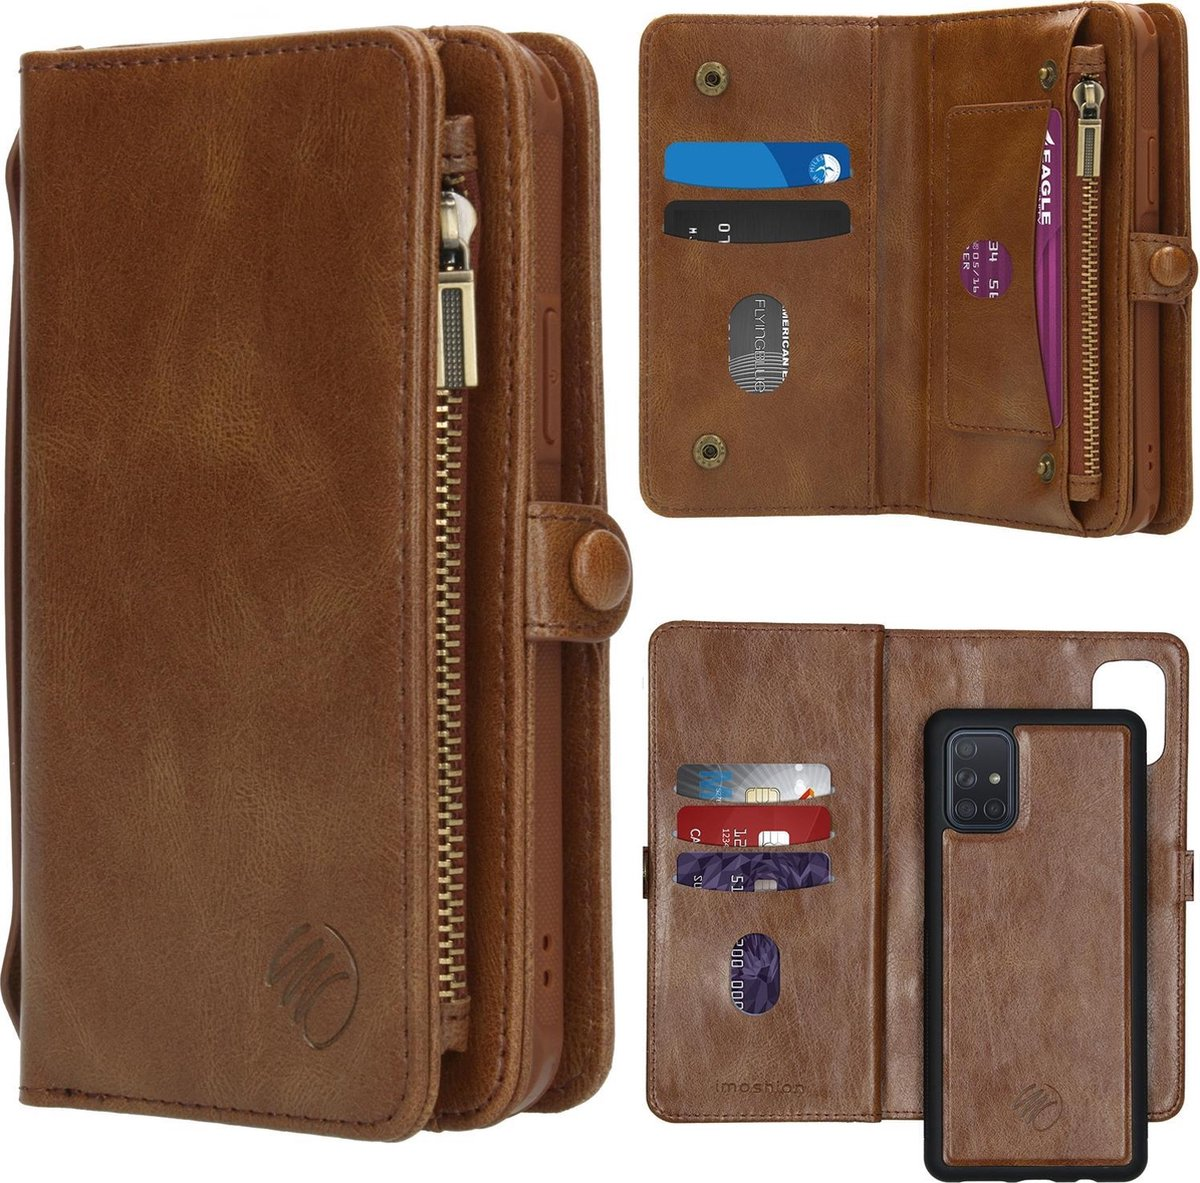 Afbeelding van product iMoshion 2-in-1 Wallet Booktype Samsung Galaxy A71 hoesje - Bruin